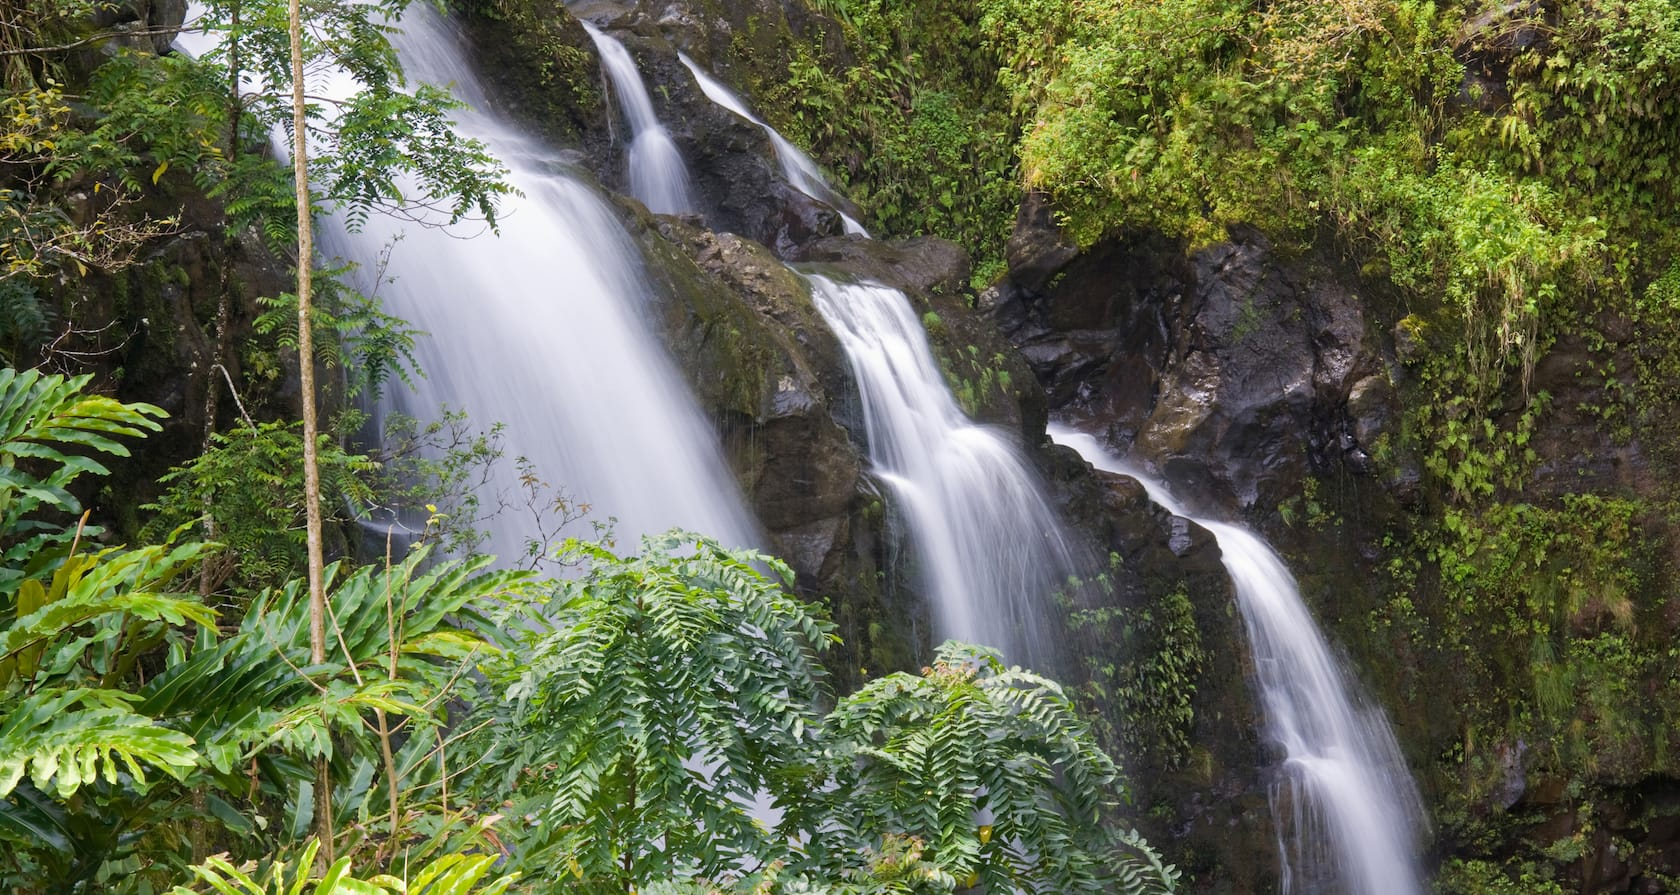 Rushing water cascades down a steep tropical hillside